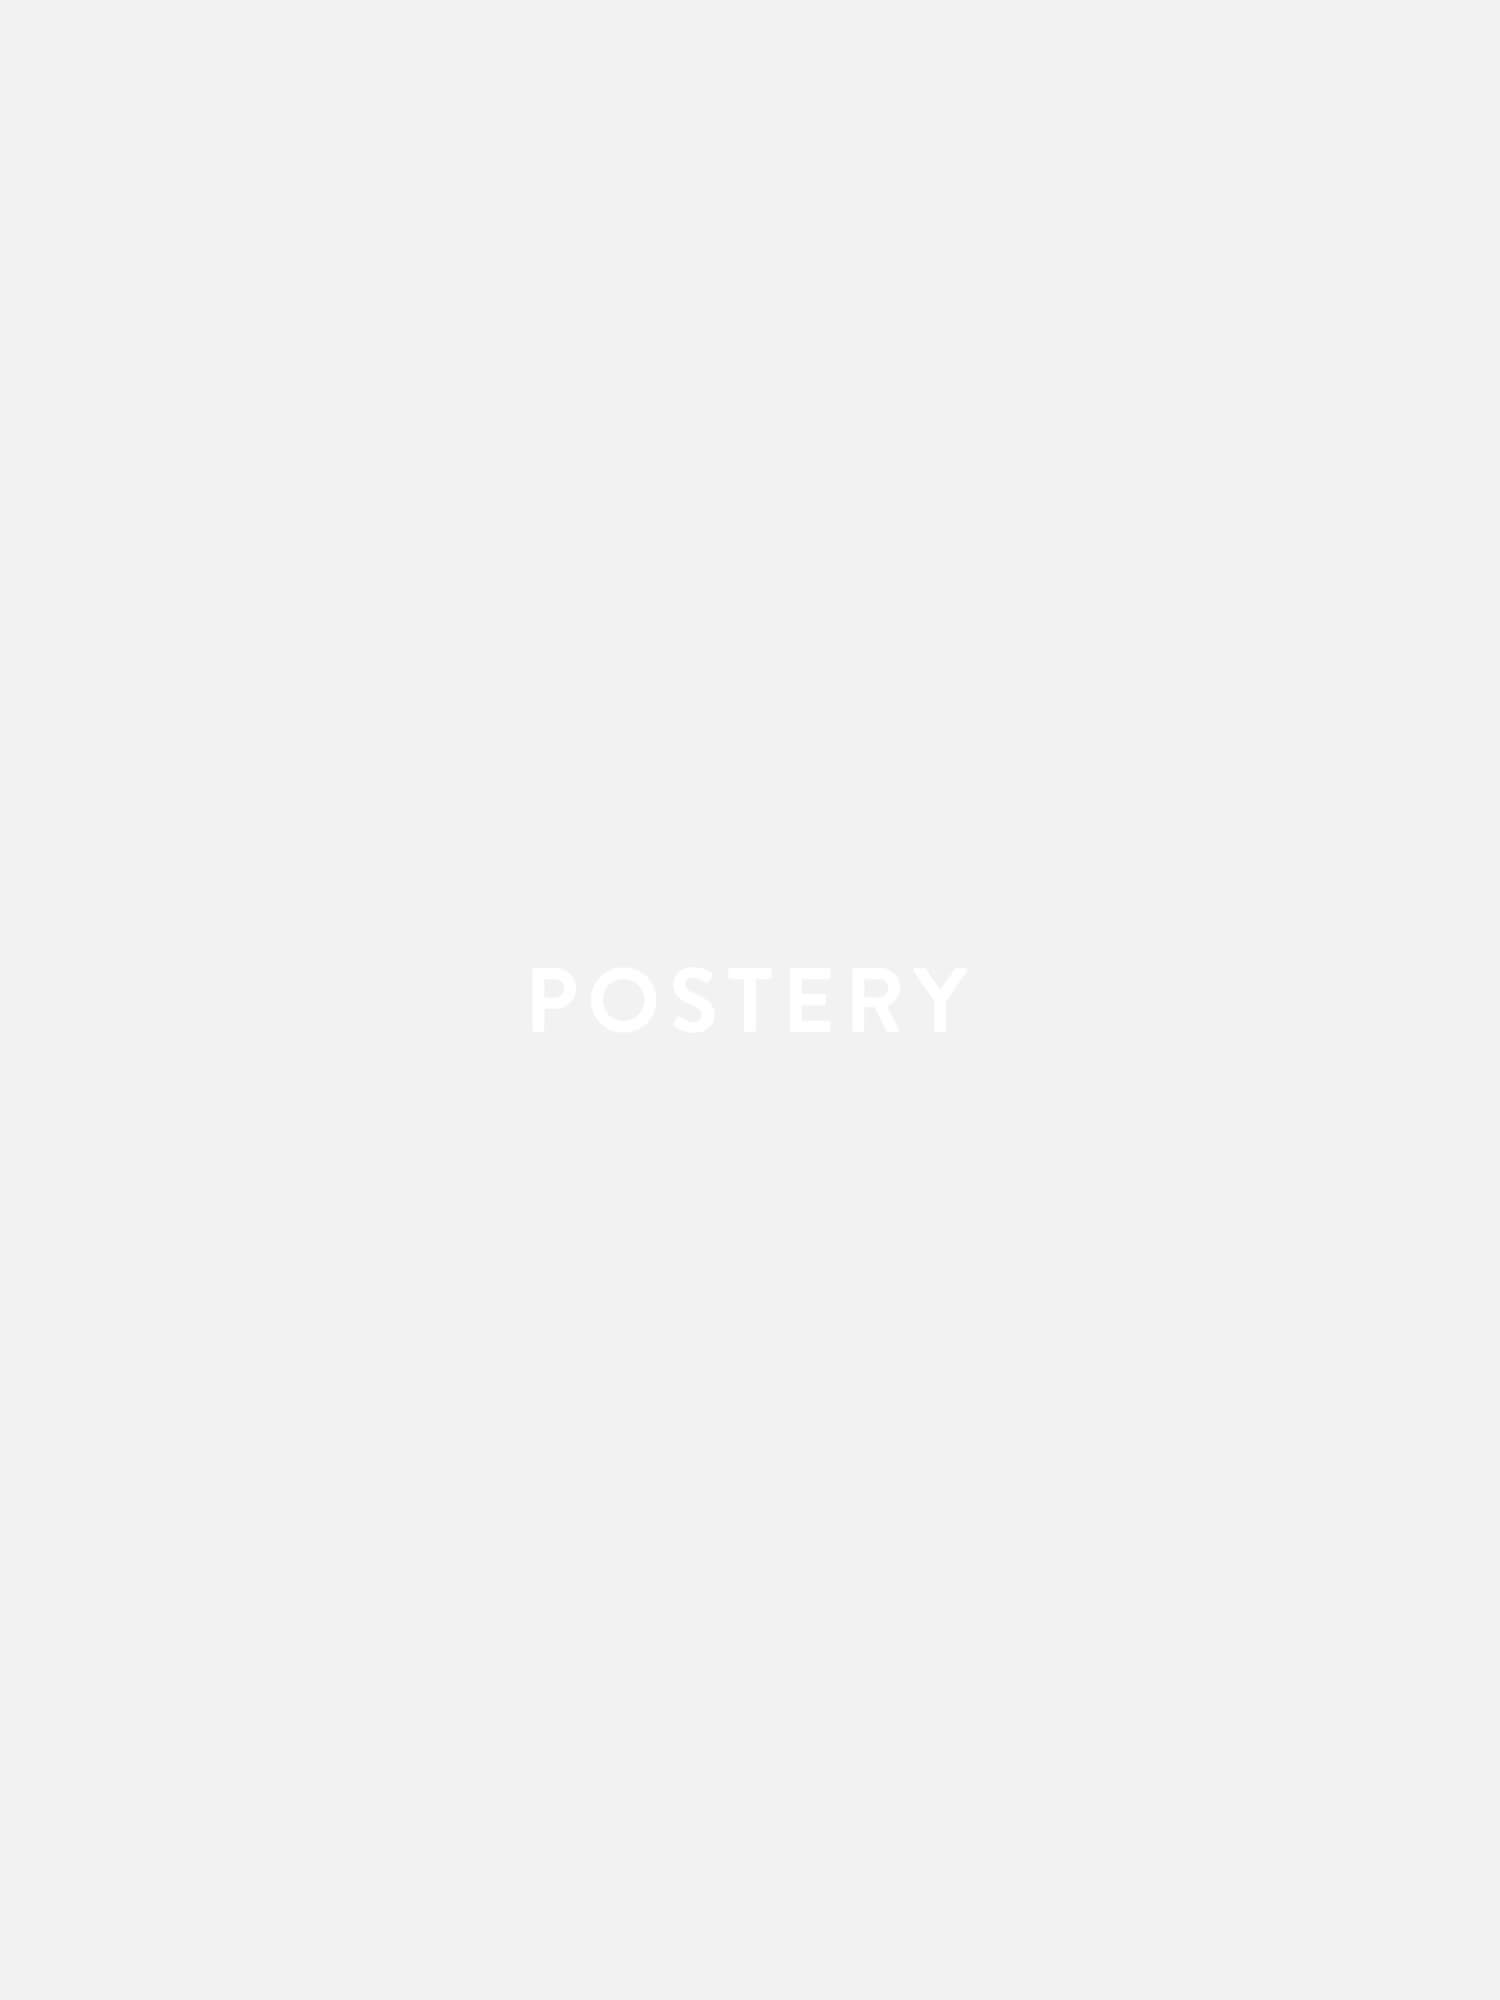 Picasso Croquis Poster